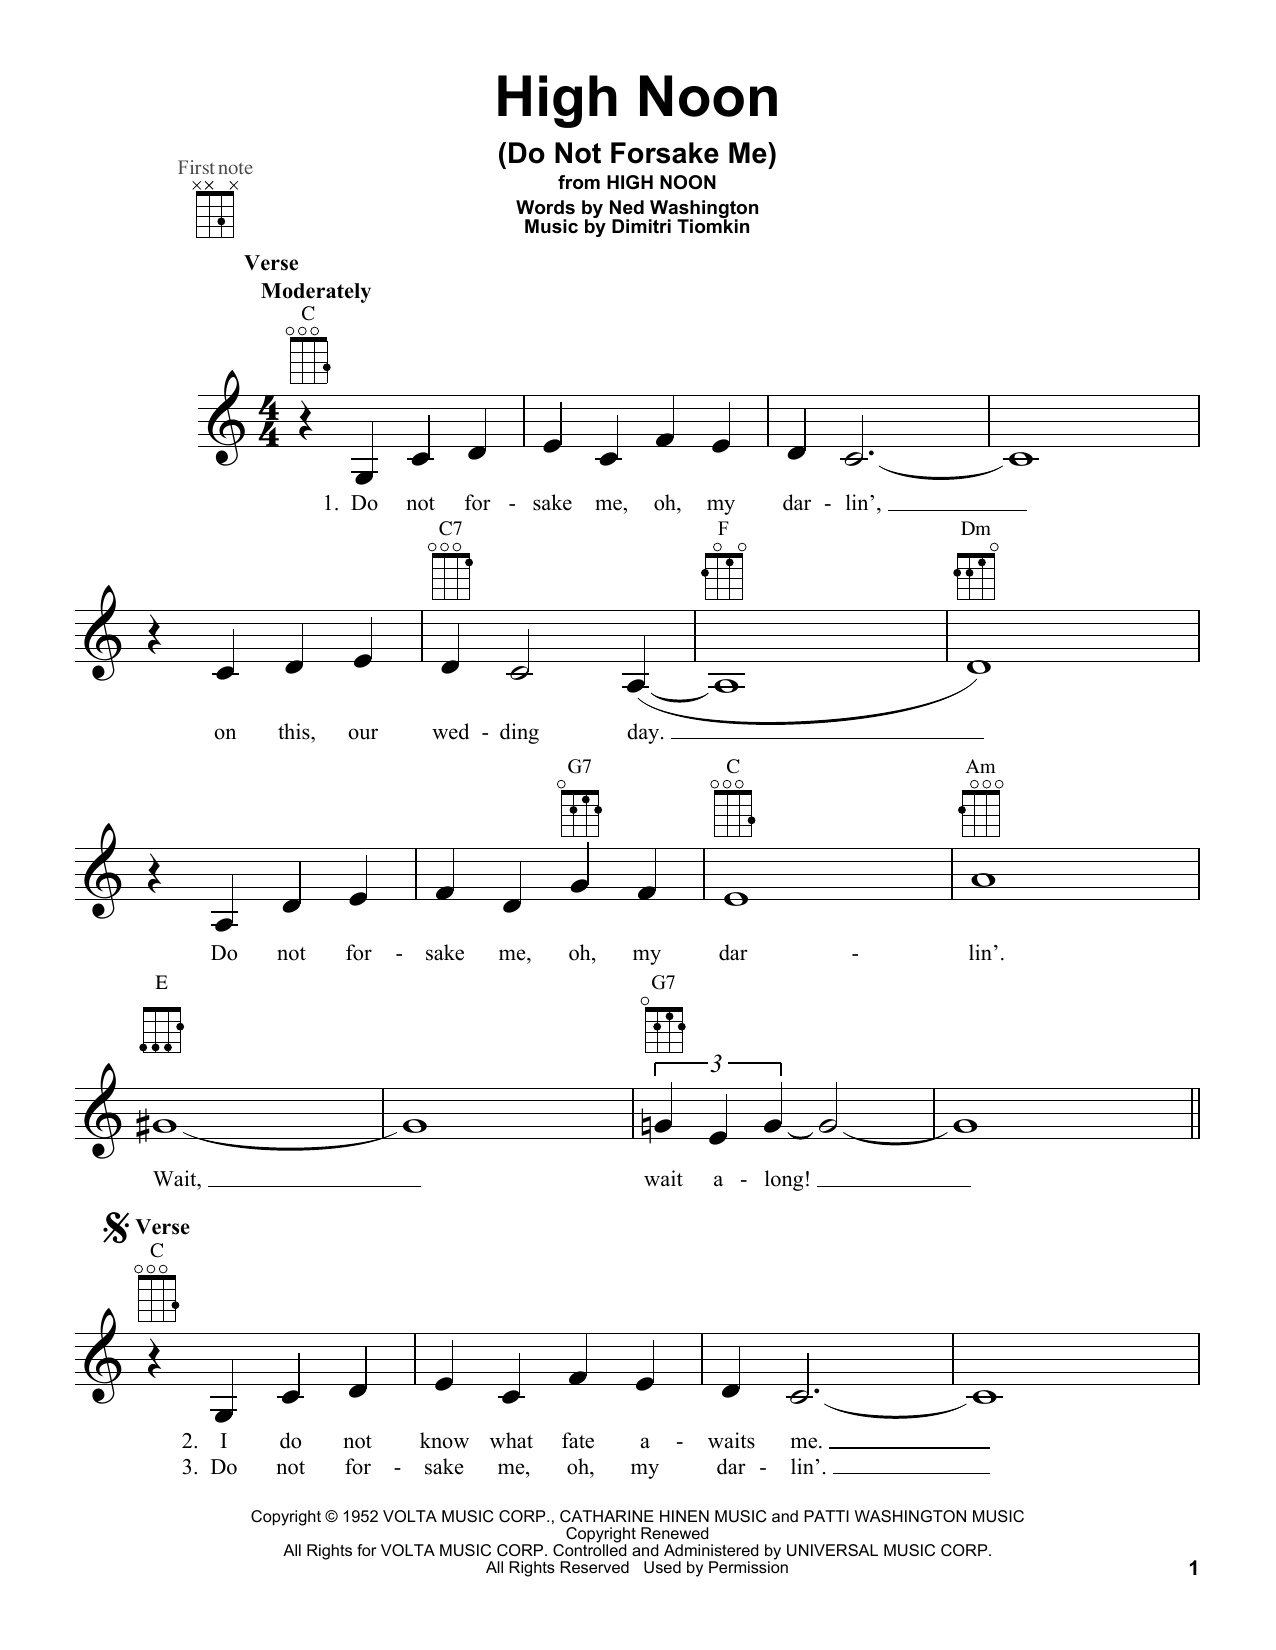 Ned Washington High Noon (Do Not Forsake Me) sheet music notes and chords. Download Printable PDF.